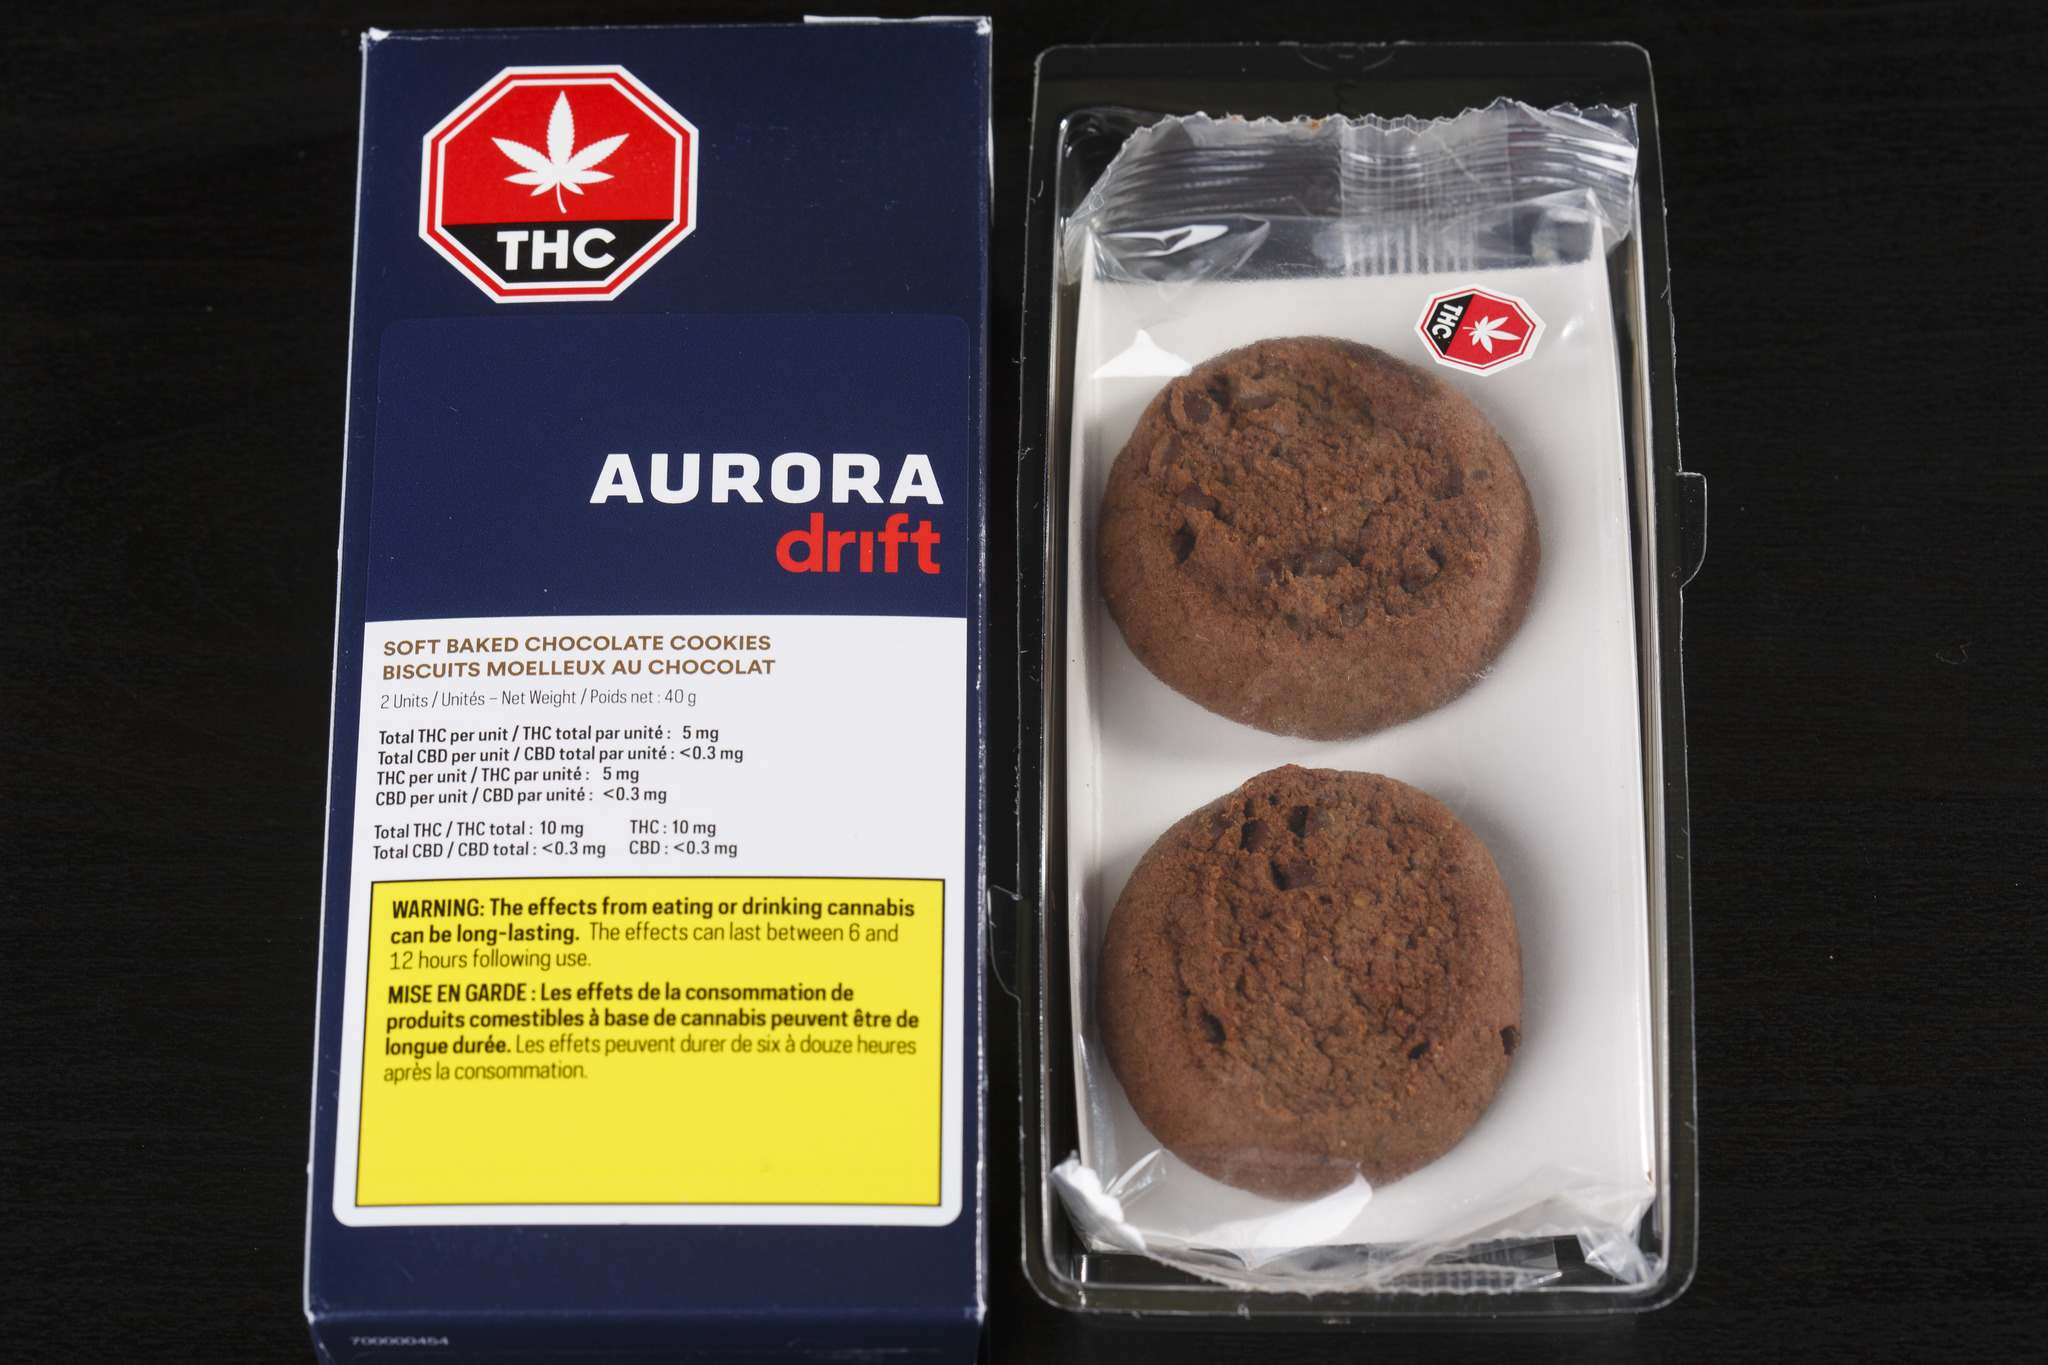 Aurora Drift soft baked chocolate cookies are available in Winnipeg. (Mike Deal / Winnipeg Free Press files)